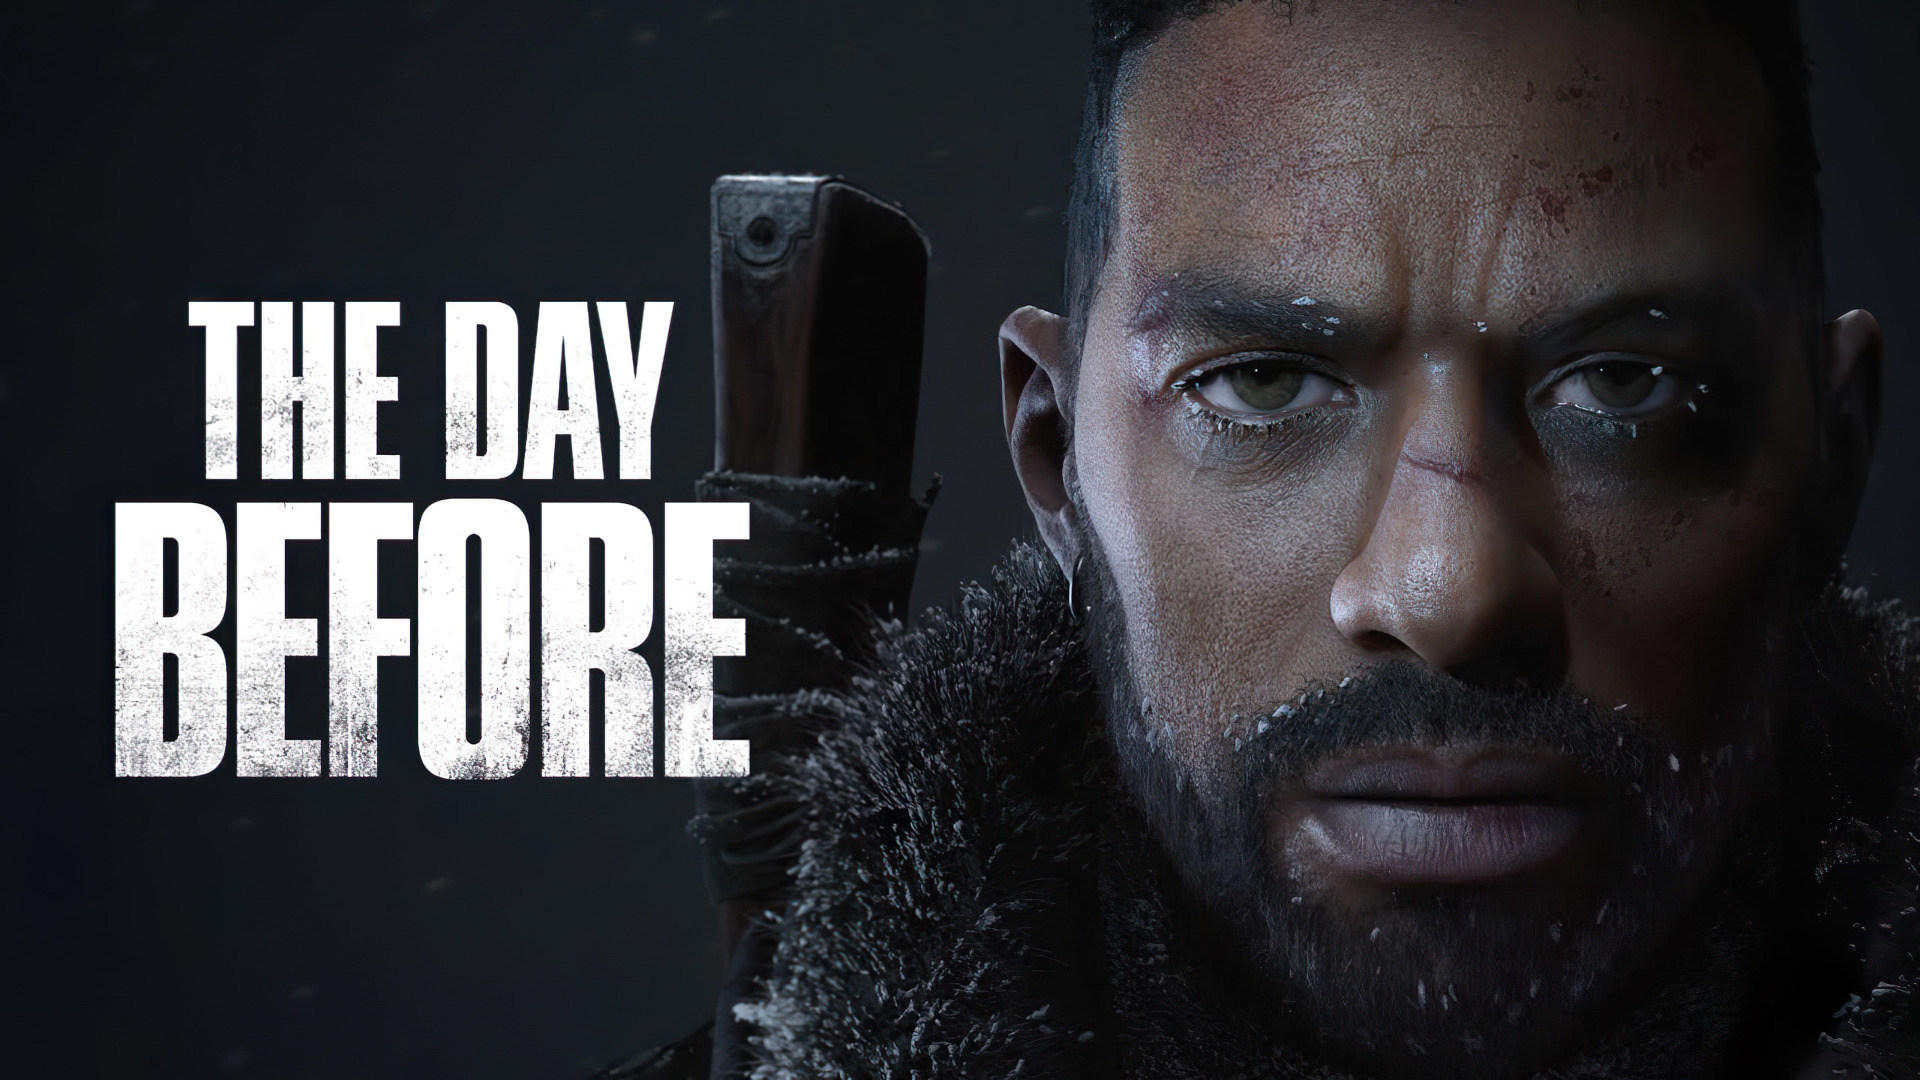 Trailer, Gameplay, Online-Spiele, Mmo, Survival, Open World, The Day Before, FNTASTIC, MYTONA